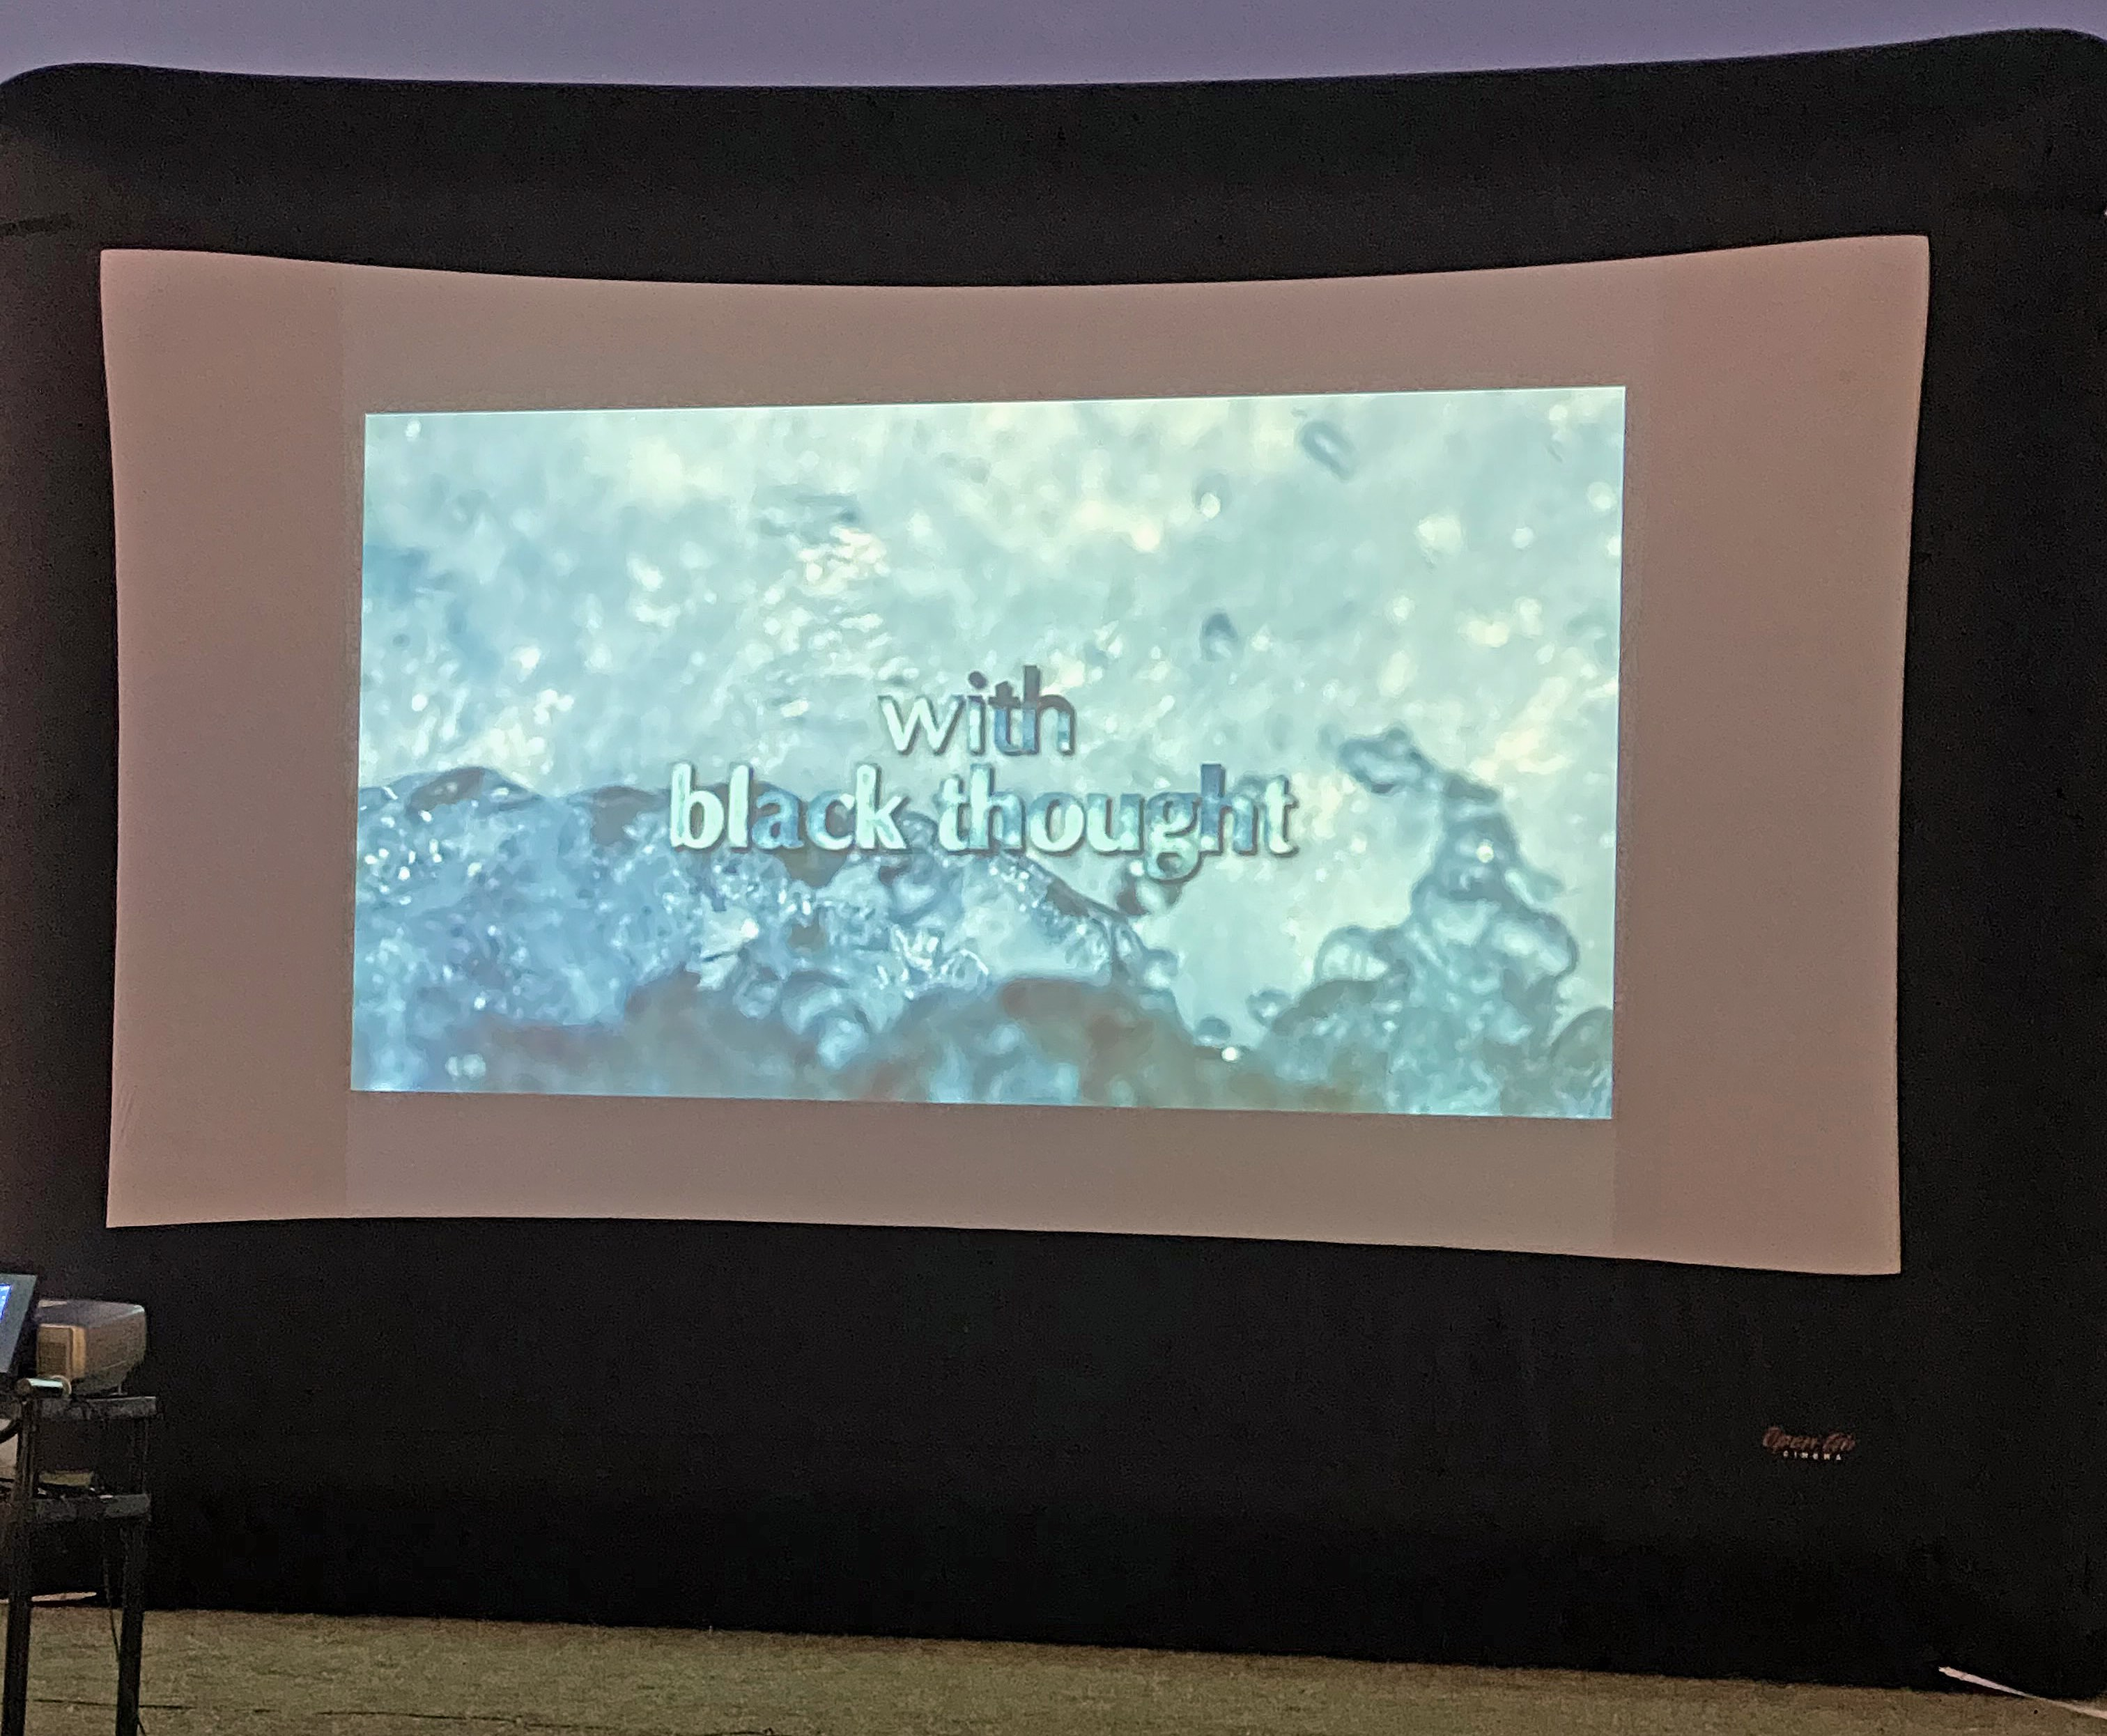 "a projection screen shows a watery background with the words ""With black thought"""